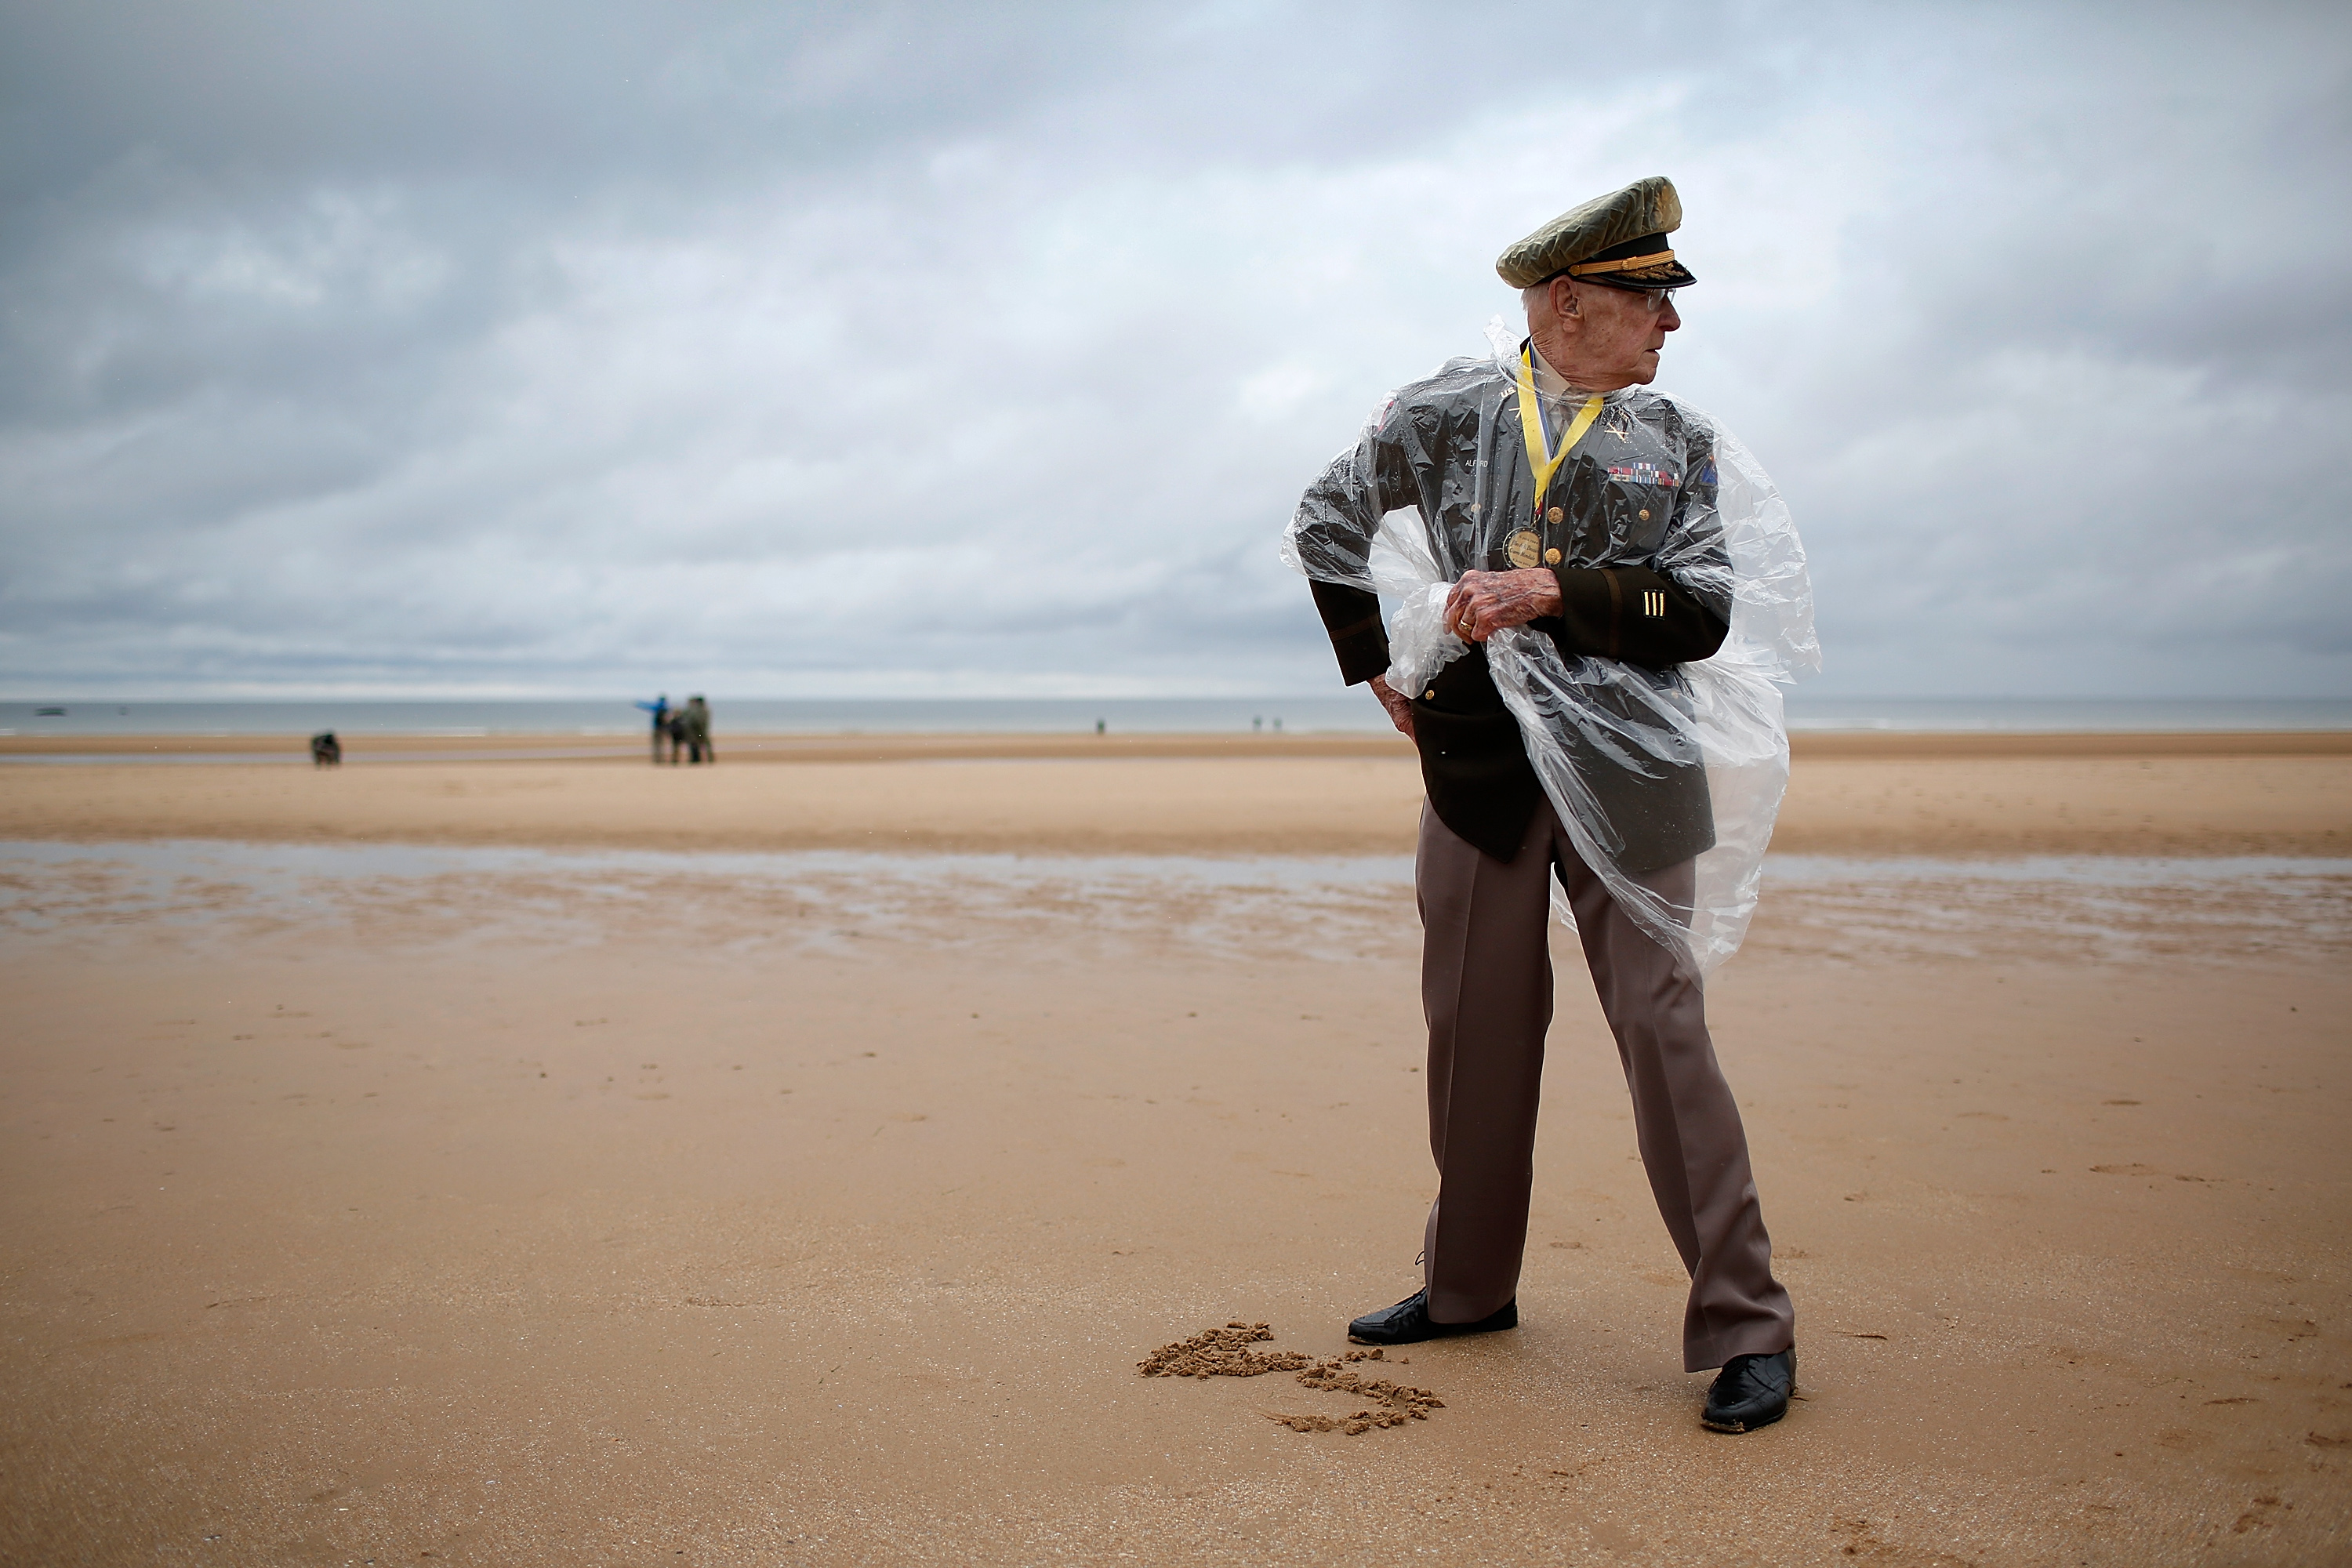 Preparation Ahead Of The 70th Anniversary Of D-Day